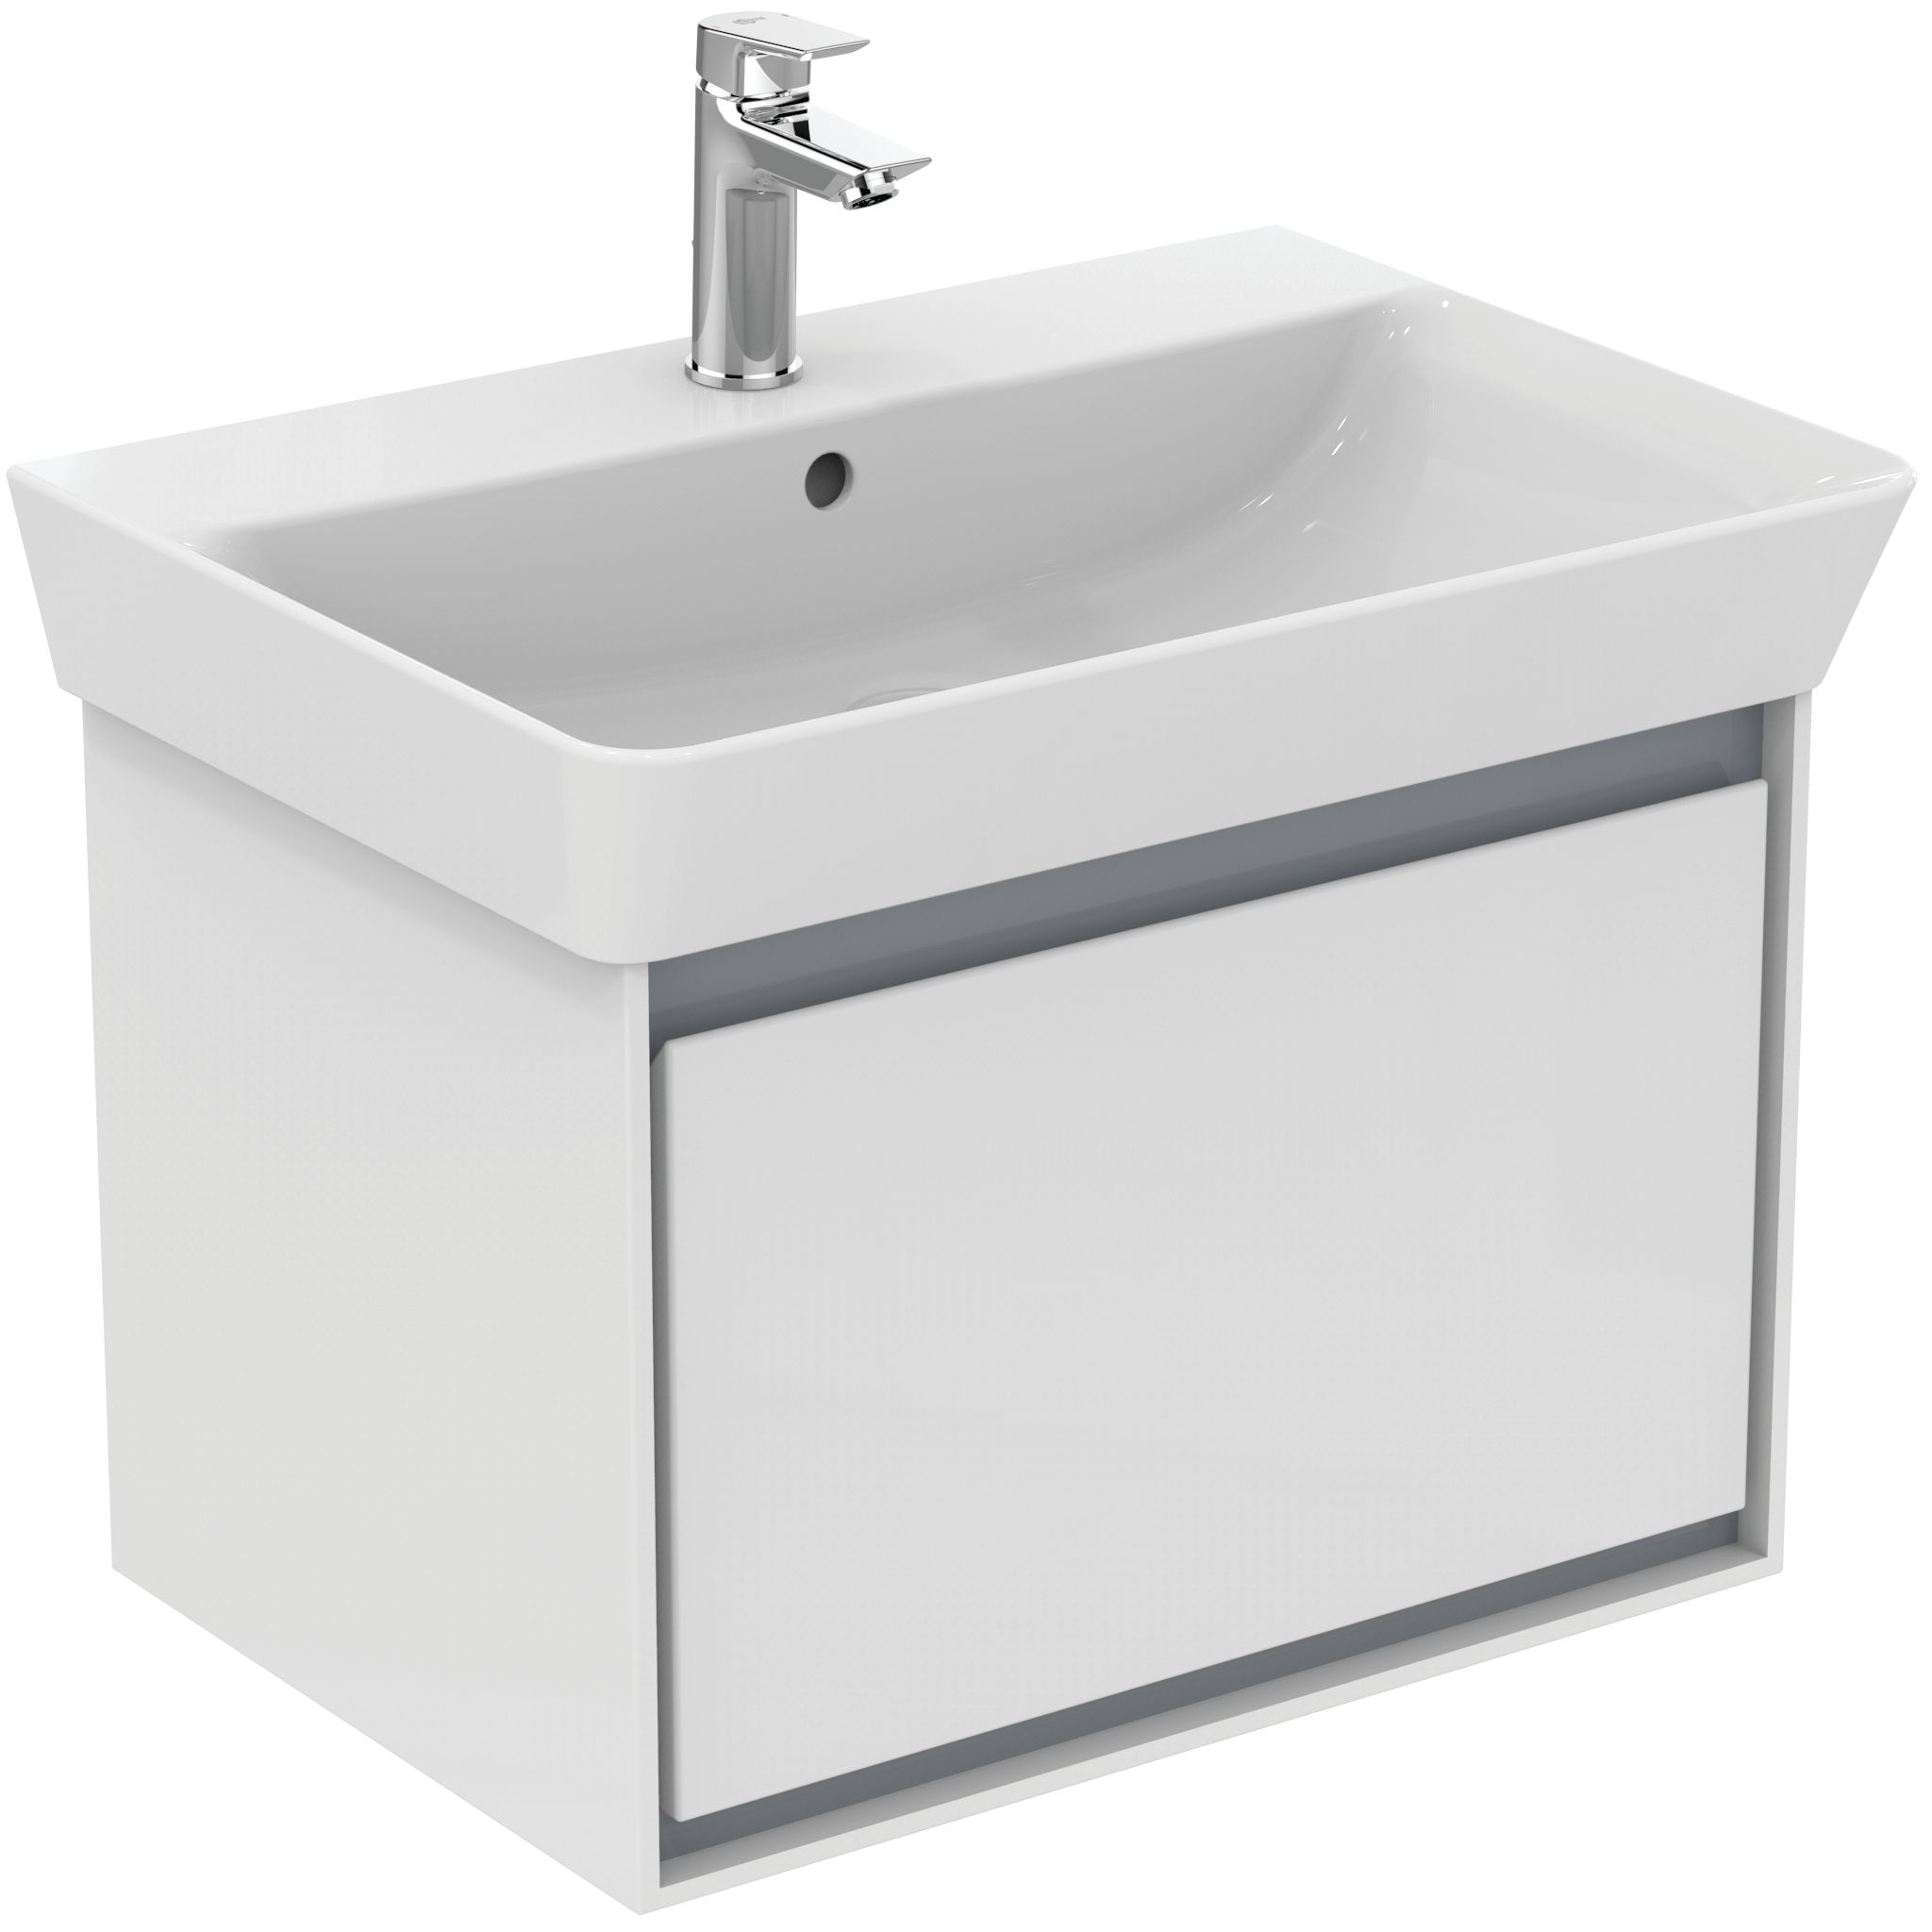 Duravit Doppelwaschtisch 160 Ideal Standard Bathroom Furniture Superbath Co Uk